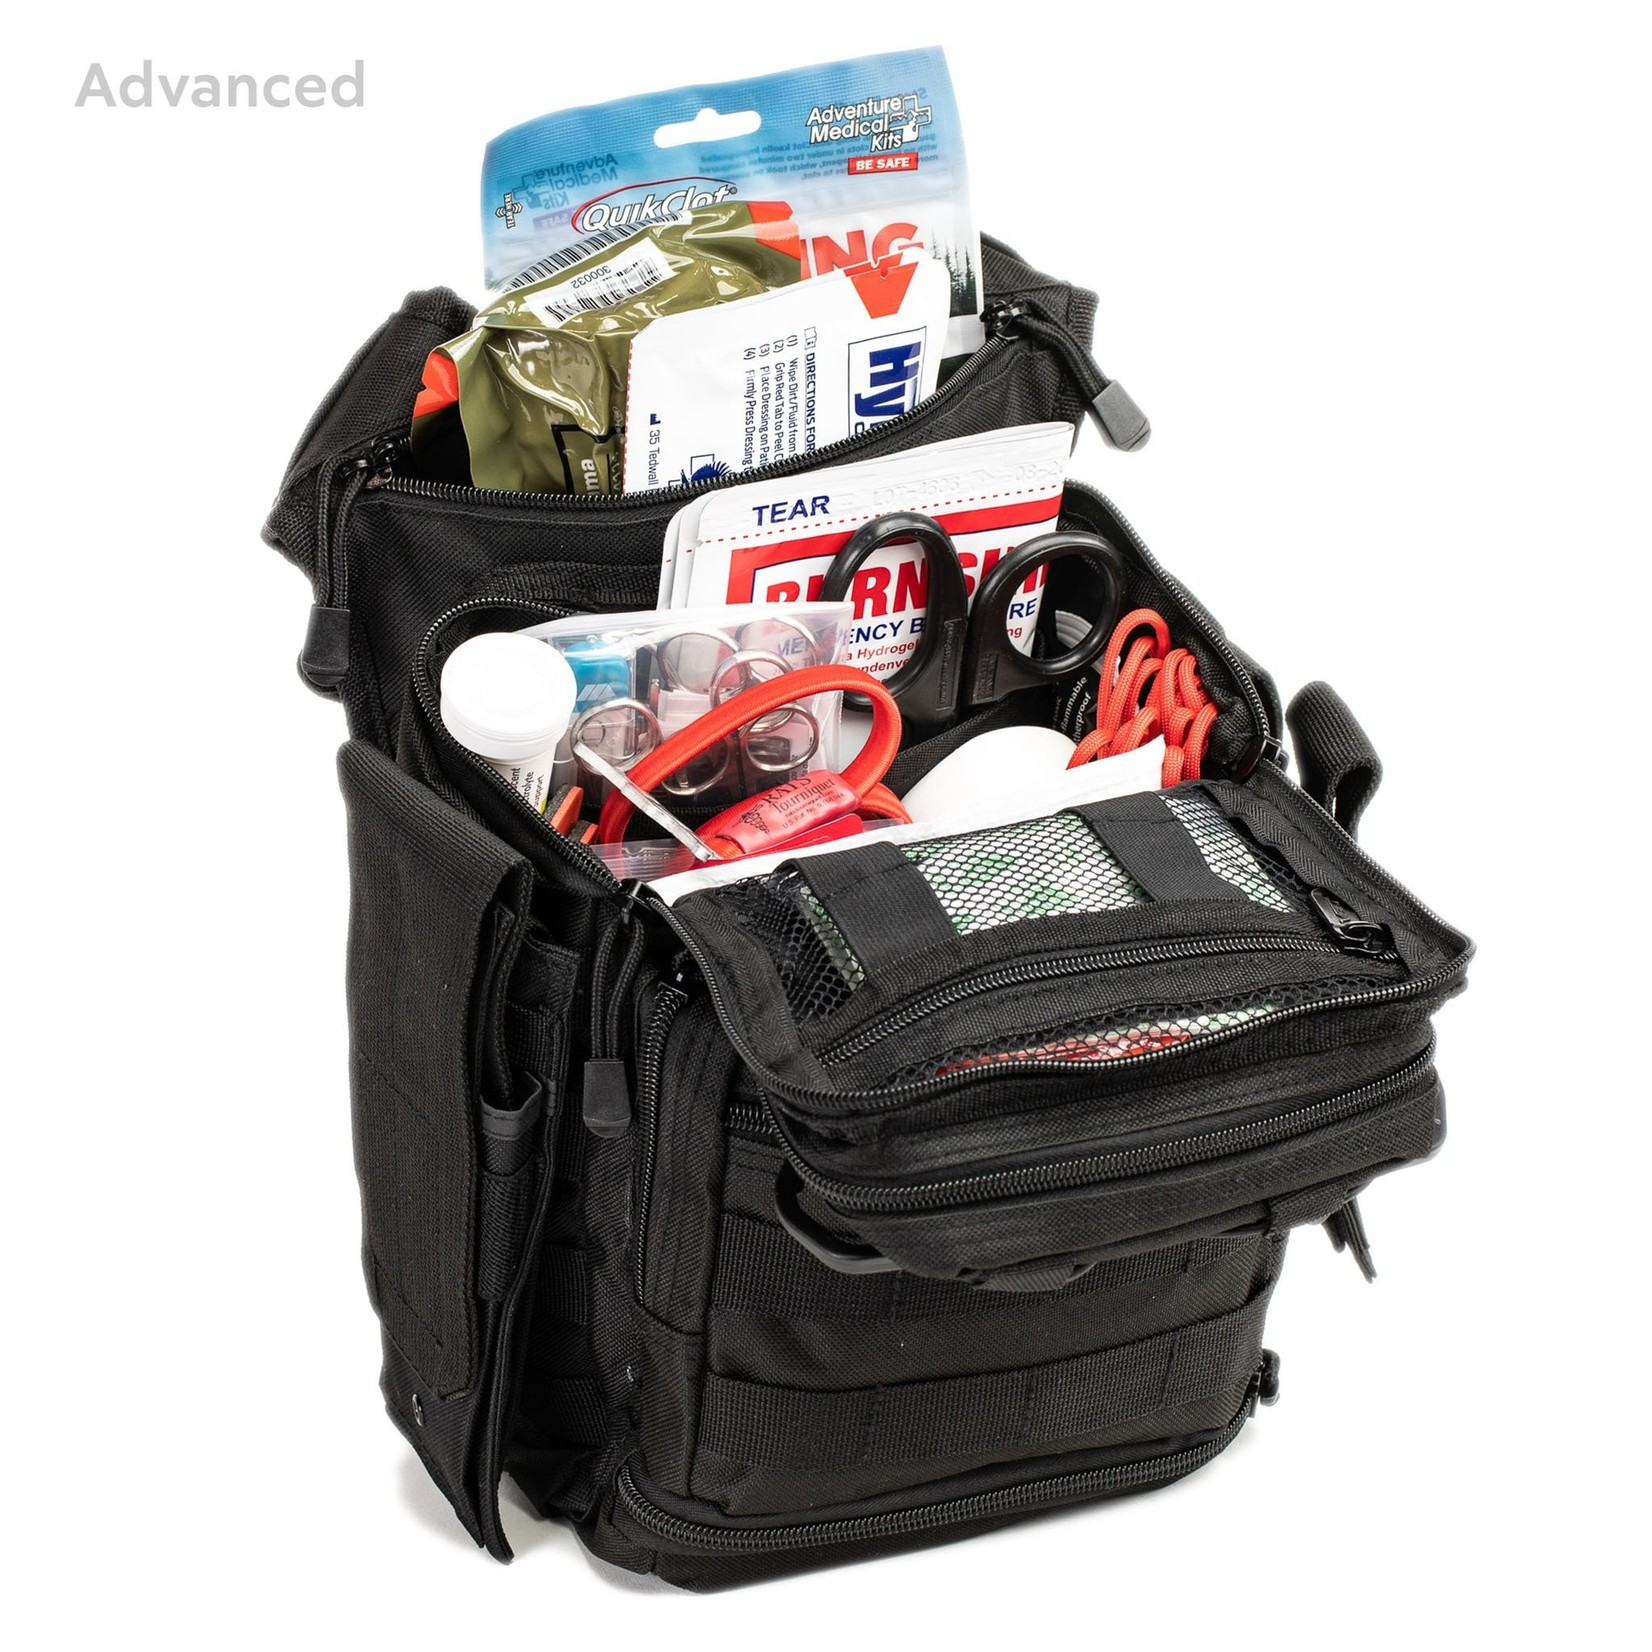 MyMedic Recon First Aid Kit